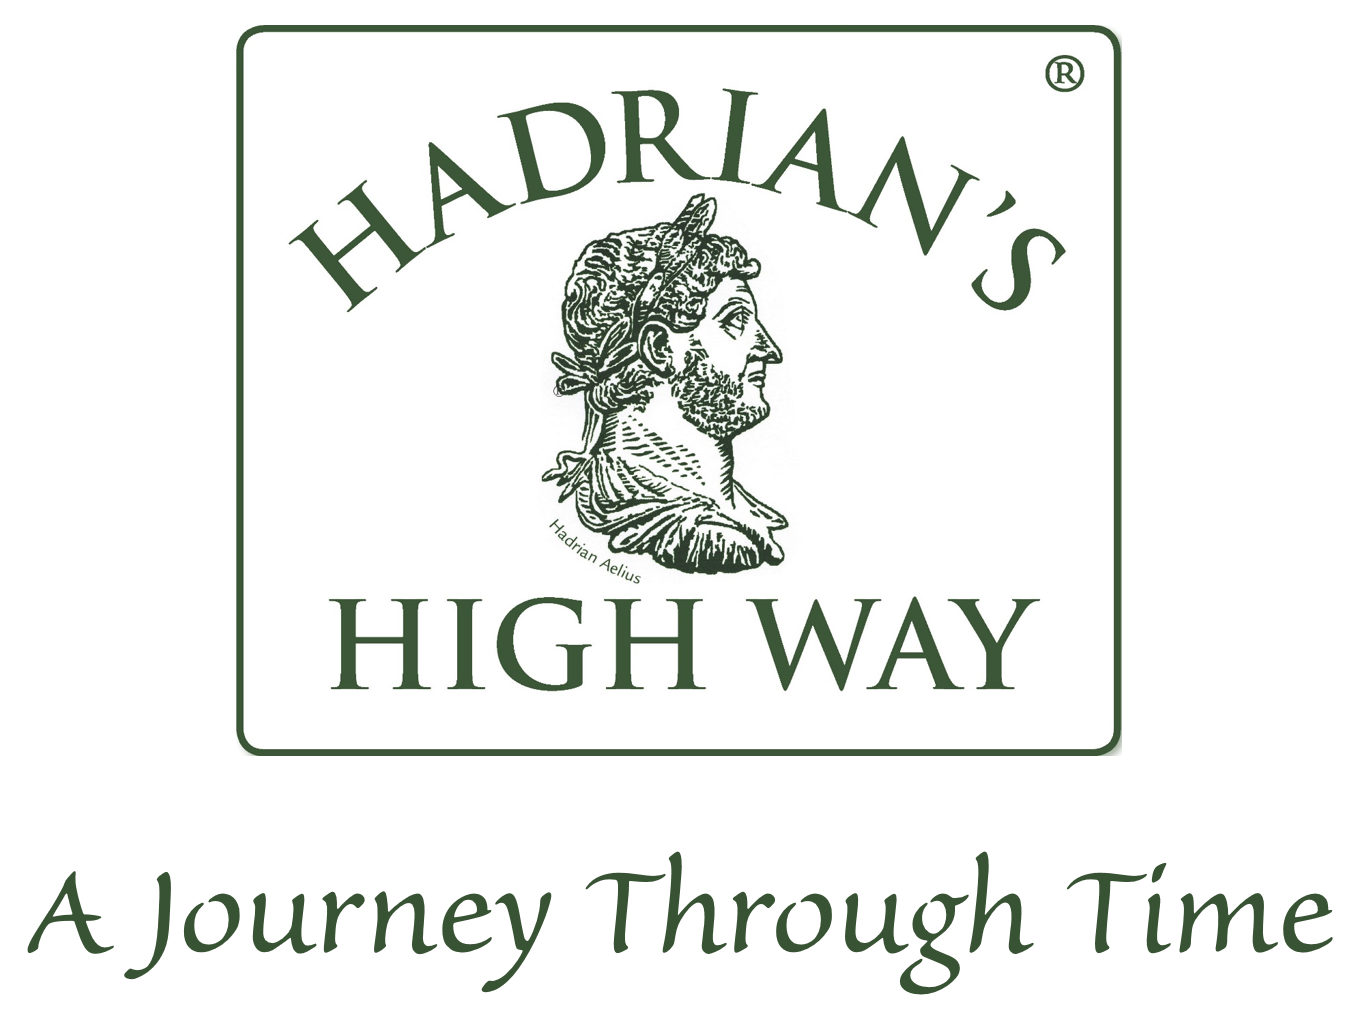 Hadrian's High Way